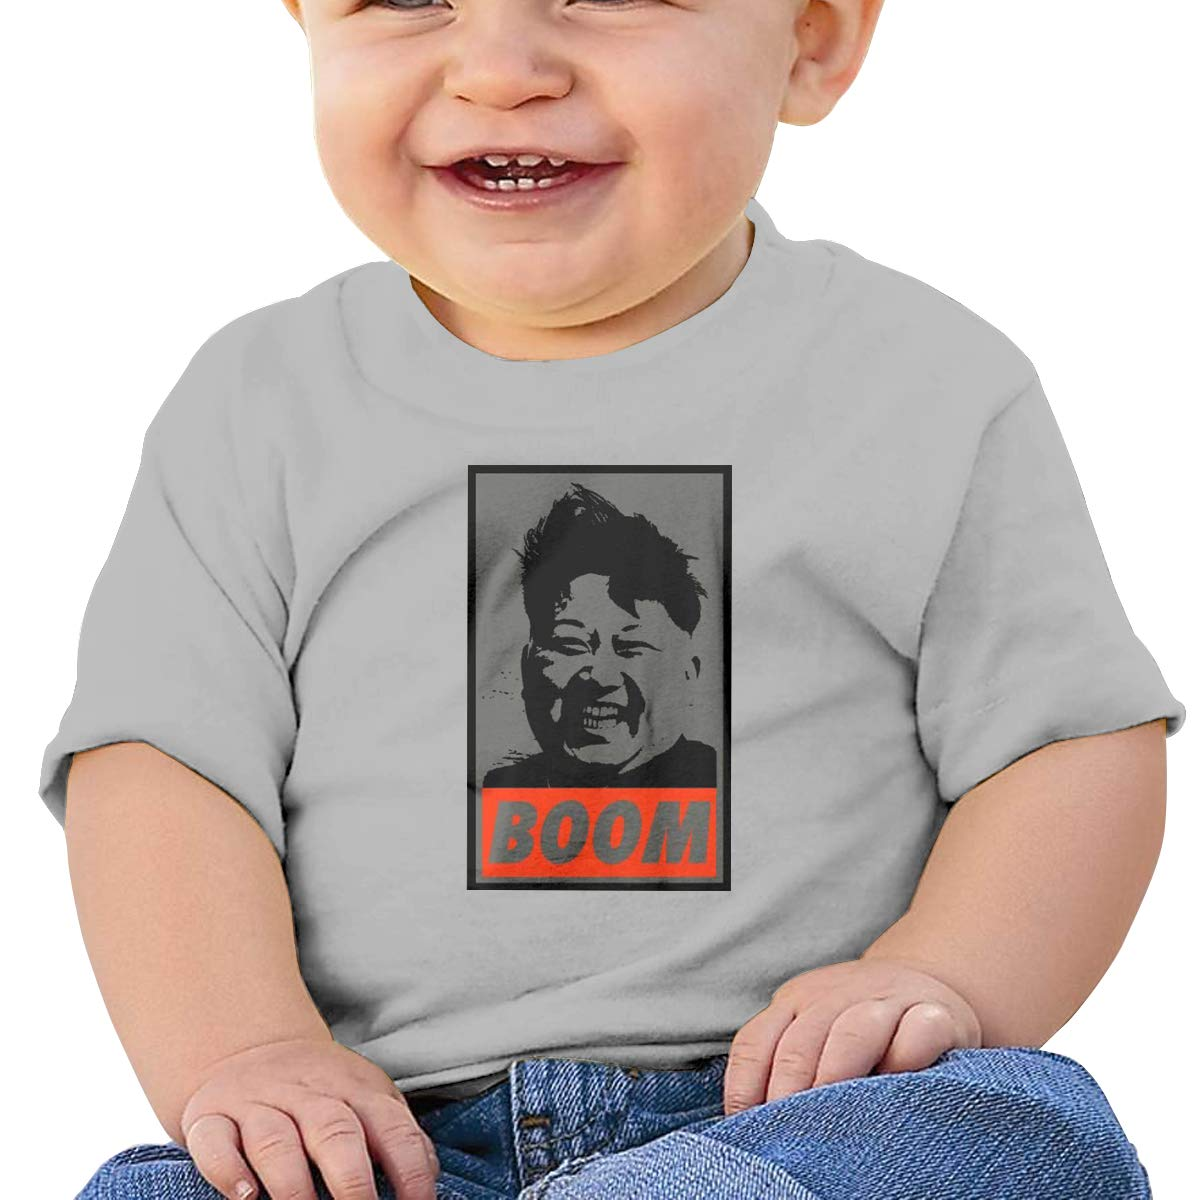 DONGLY 6-24 Month Baby T-Shirt Kim Jong Un Boom Nordic Winter Personality Wild Gray